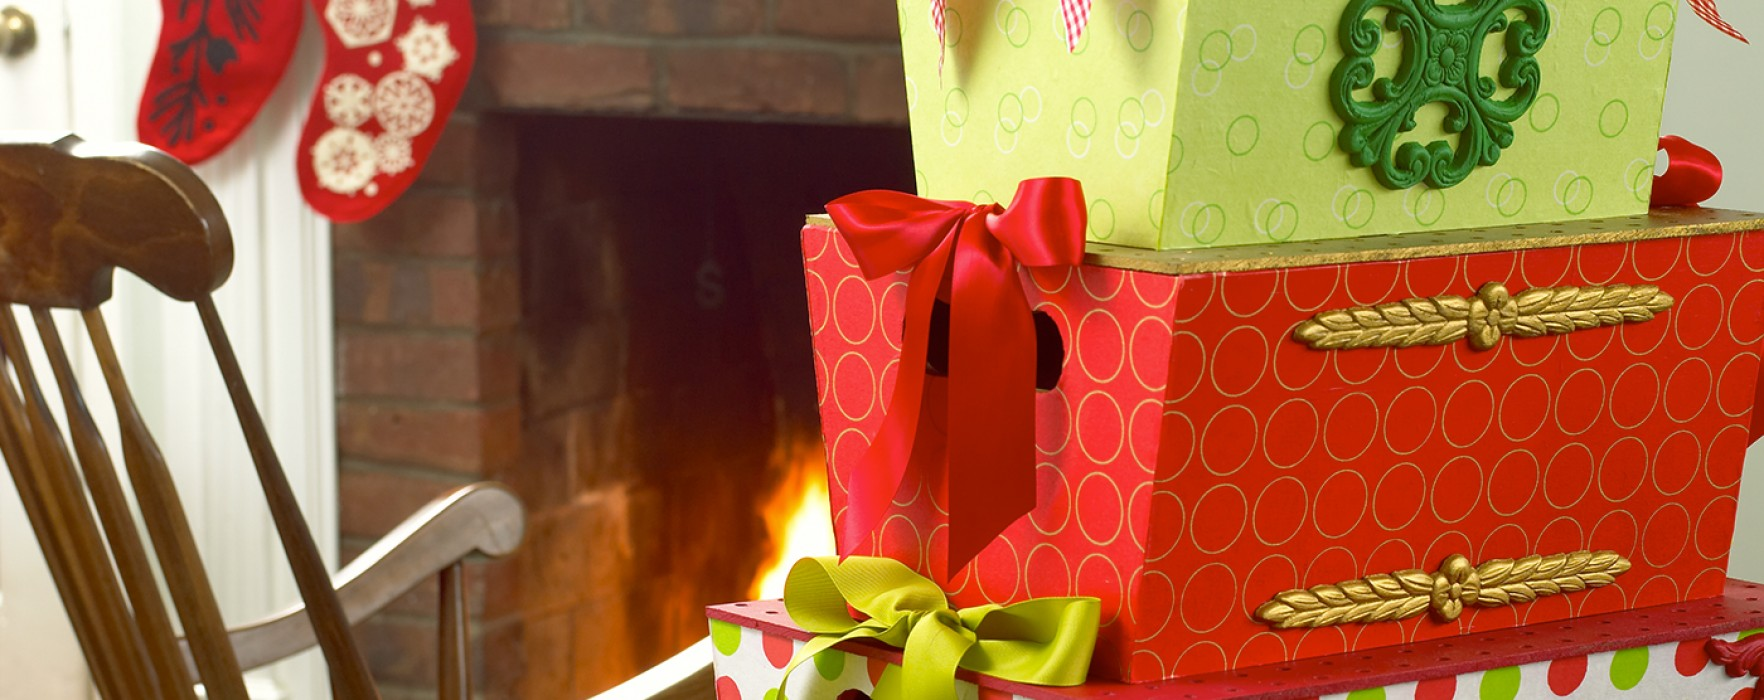 holiday storage secrets keeping your decorations